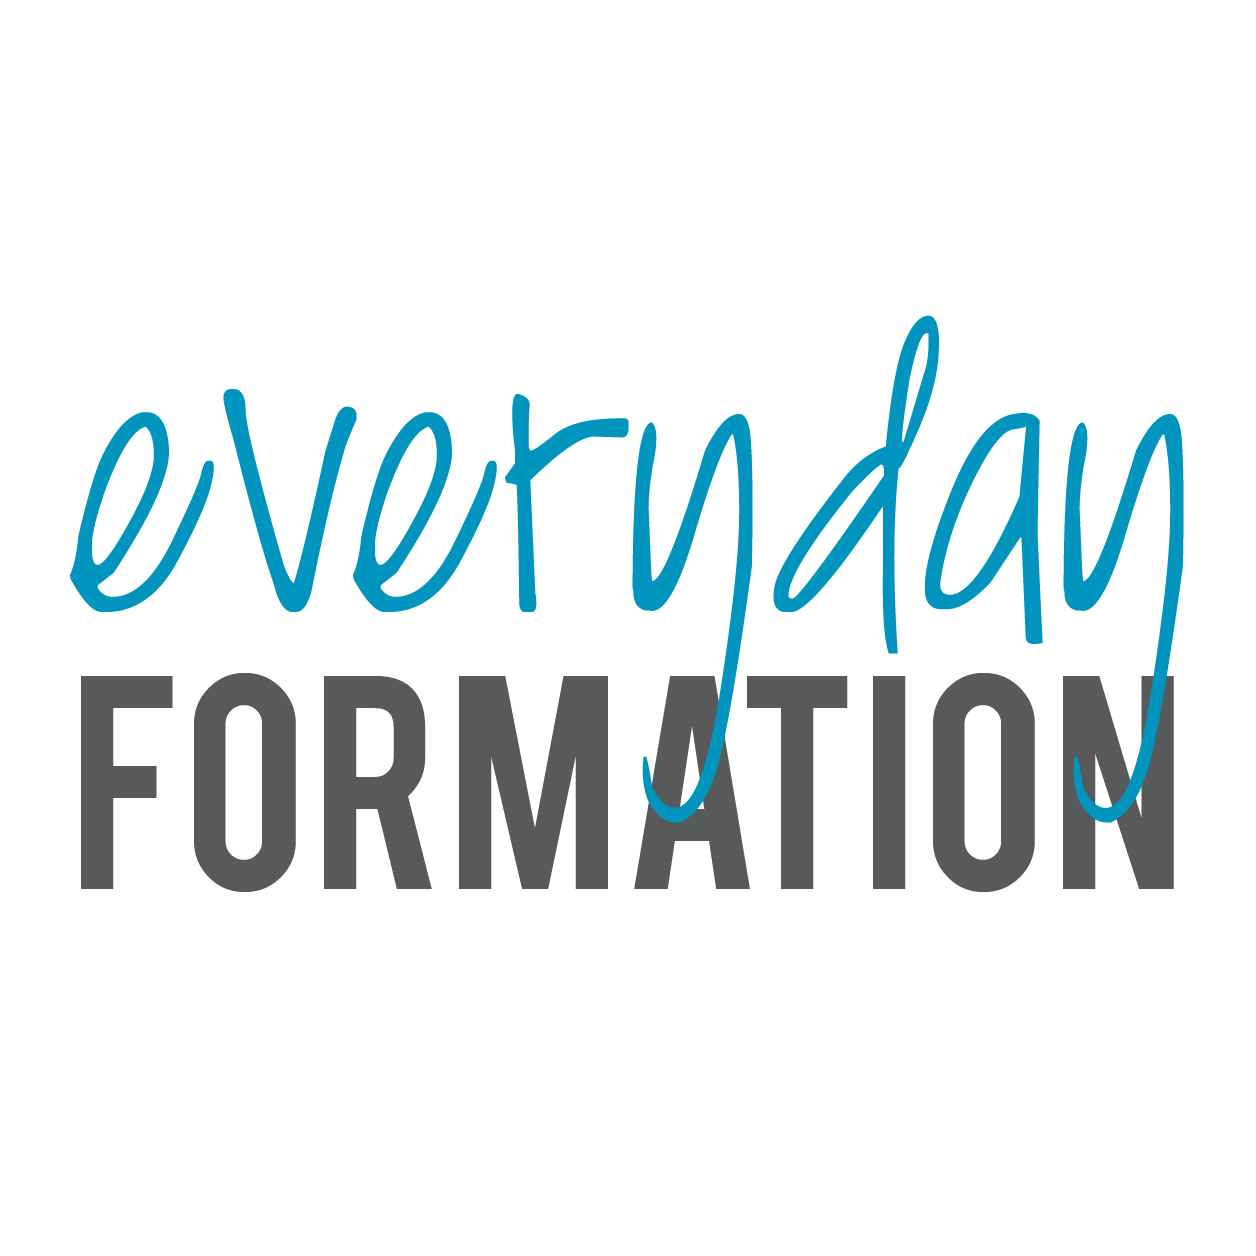 everydayFormation